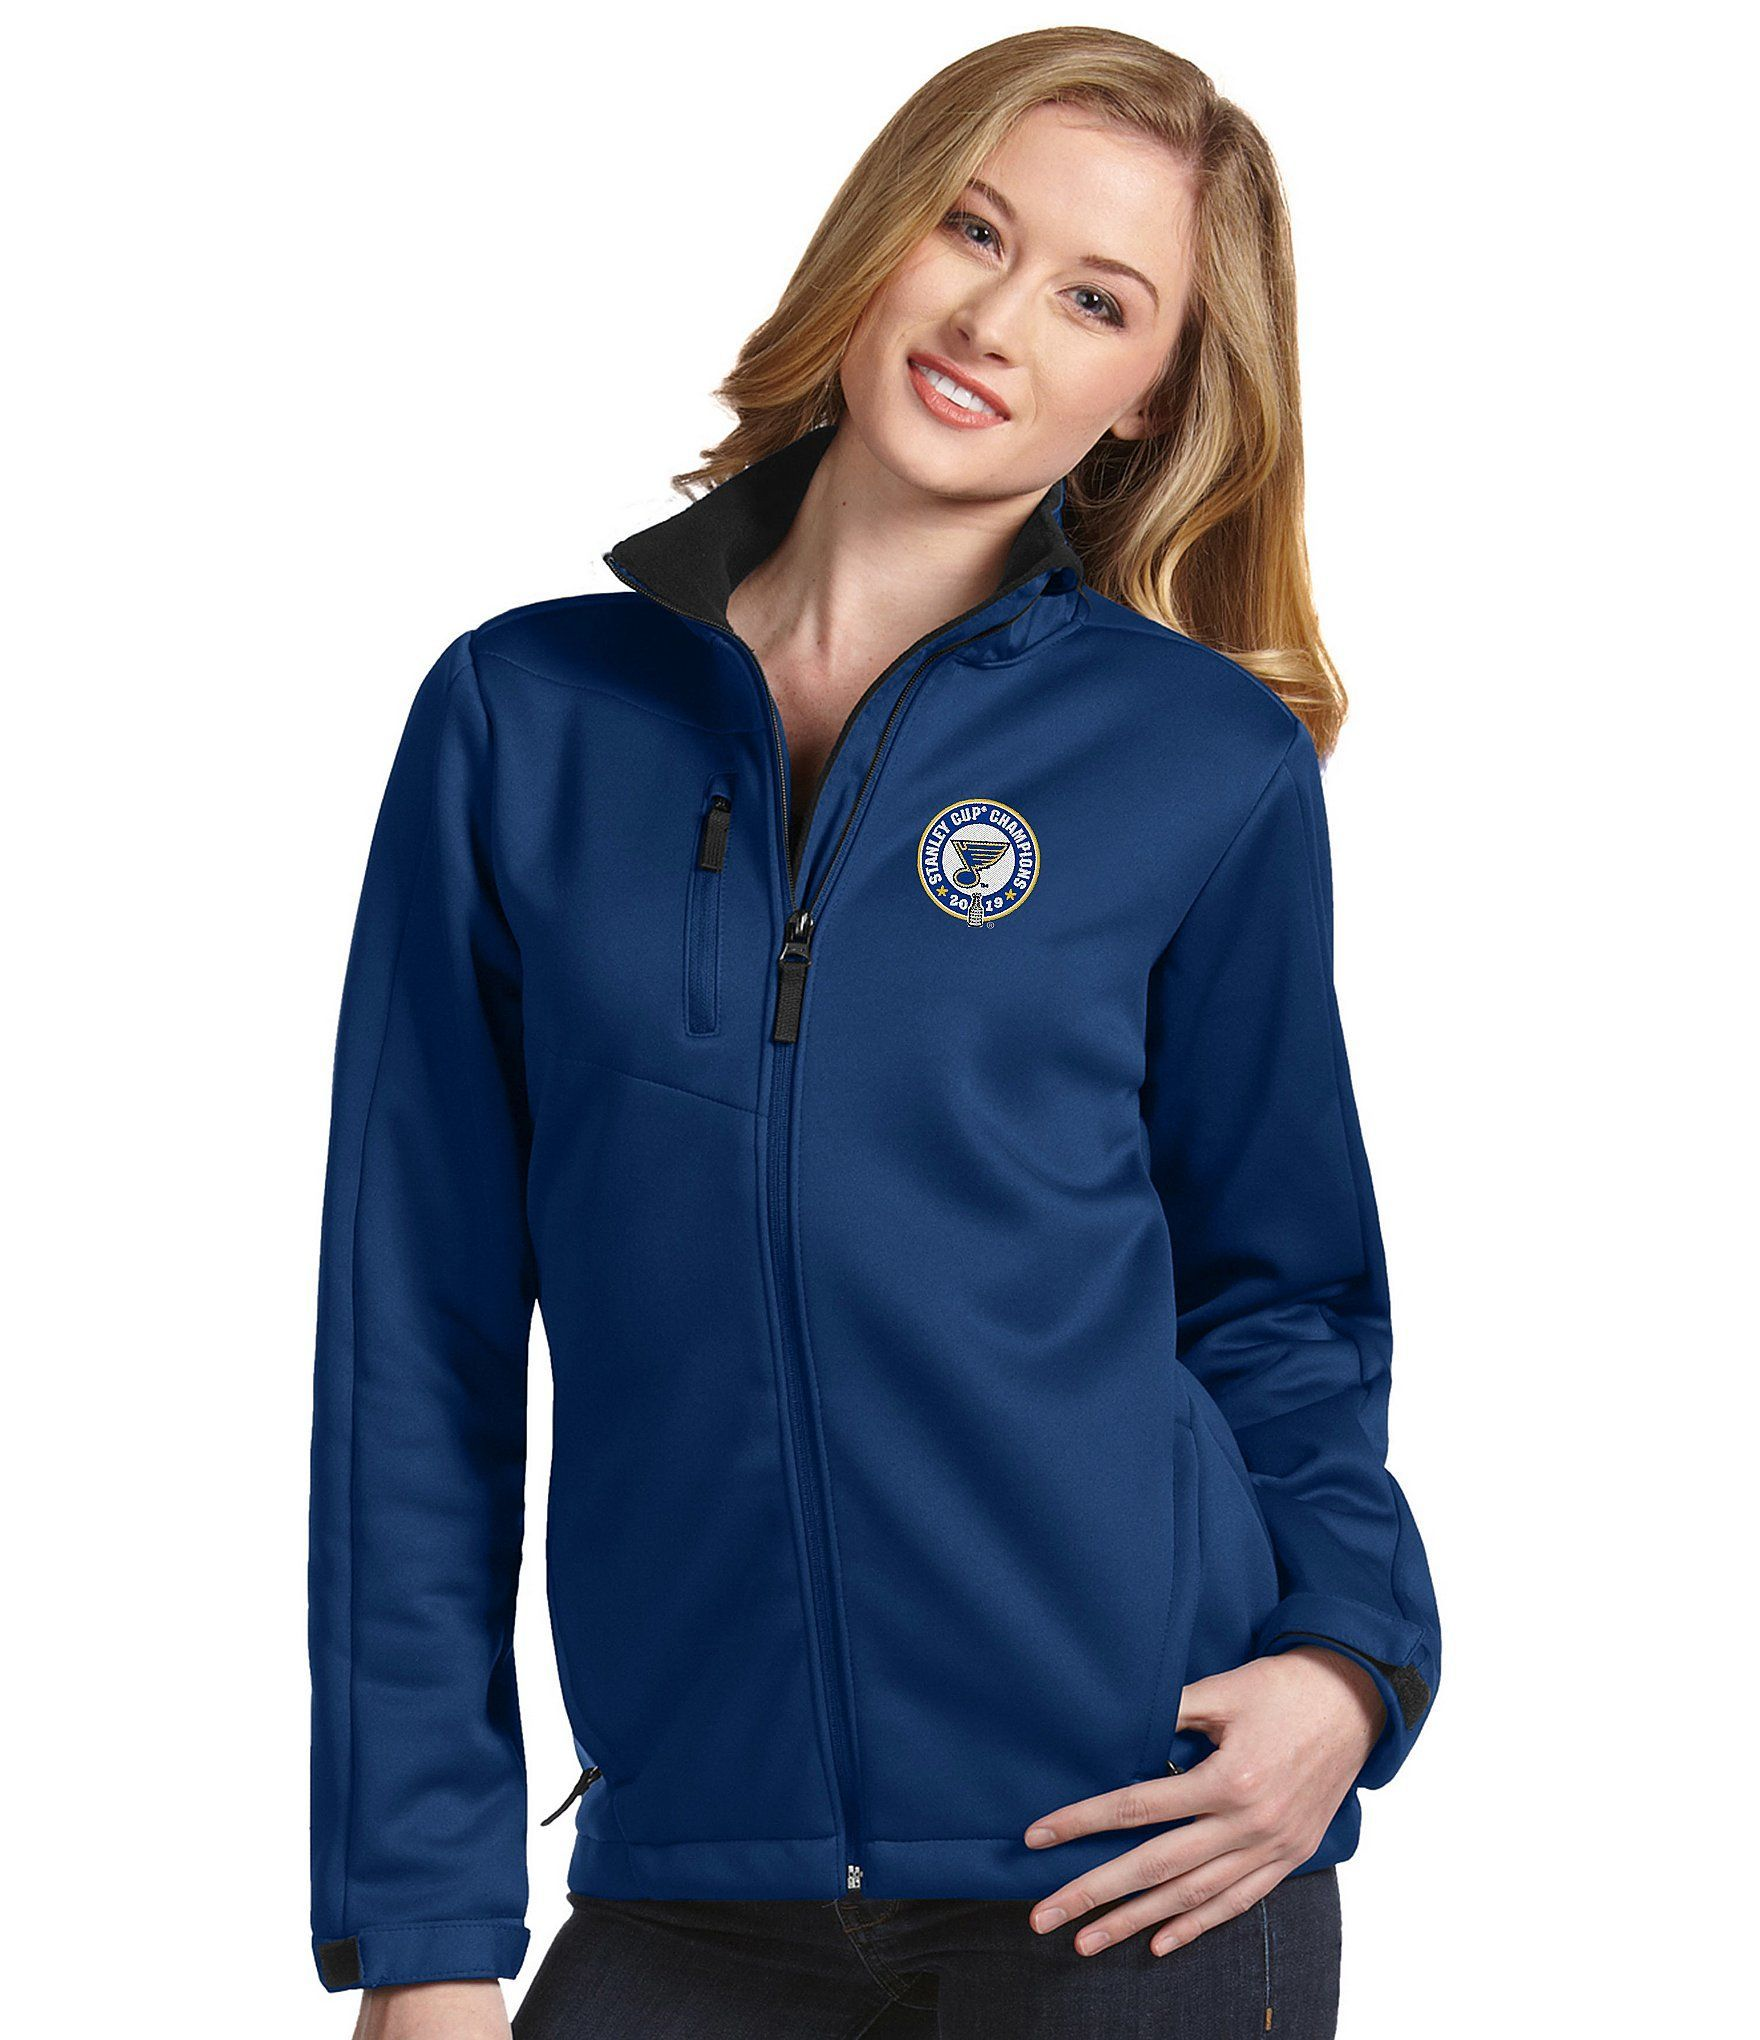 Women's jacket with full zip water resistant NHL Stanley Cup Champions St. Louis Blues Tr... Wo